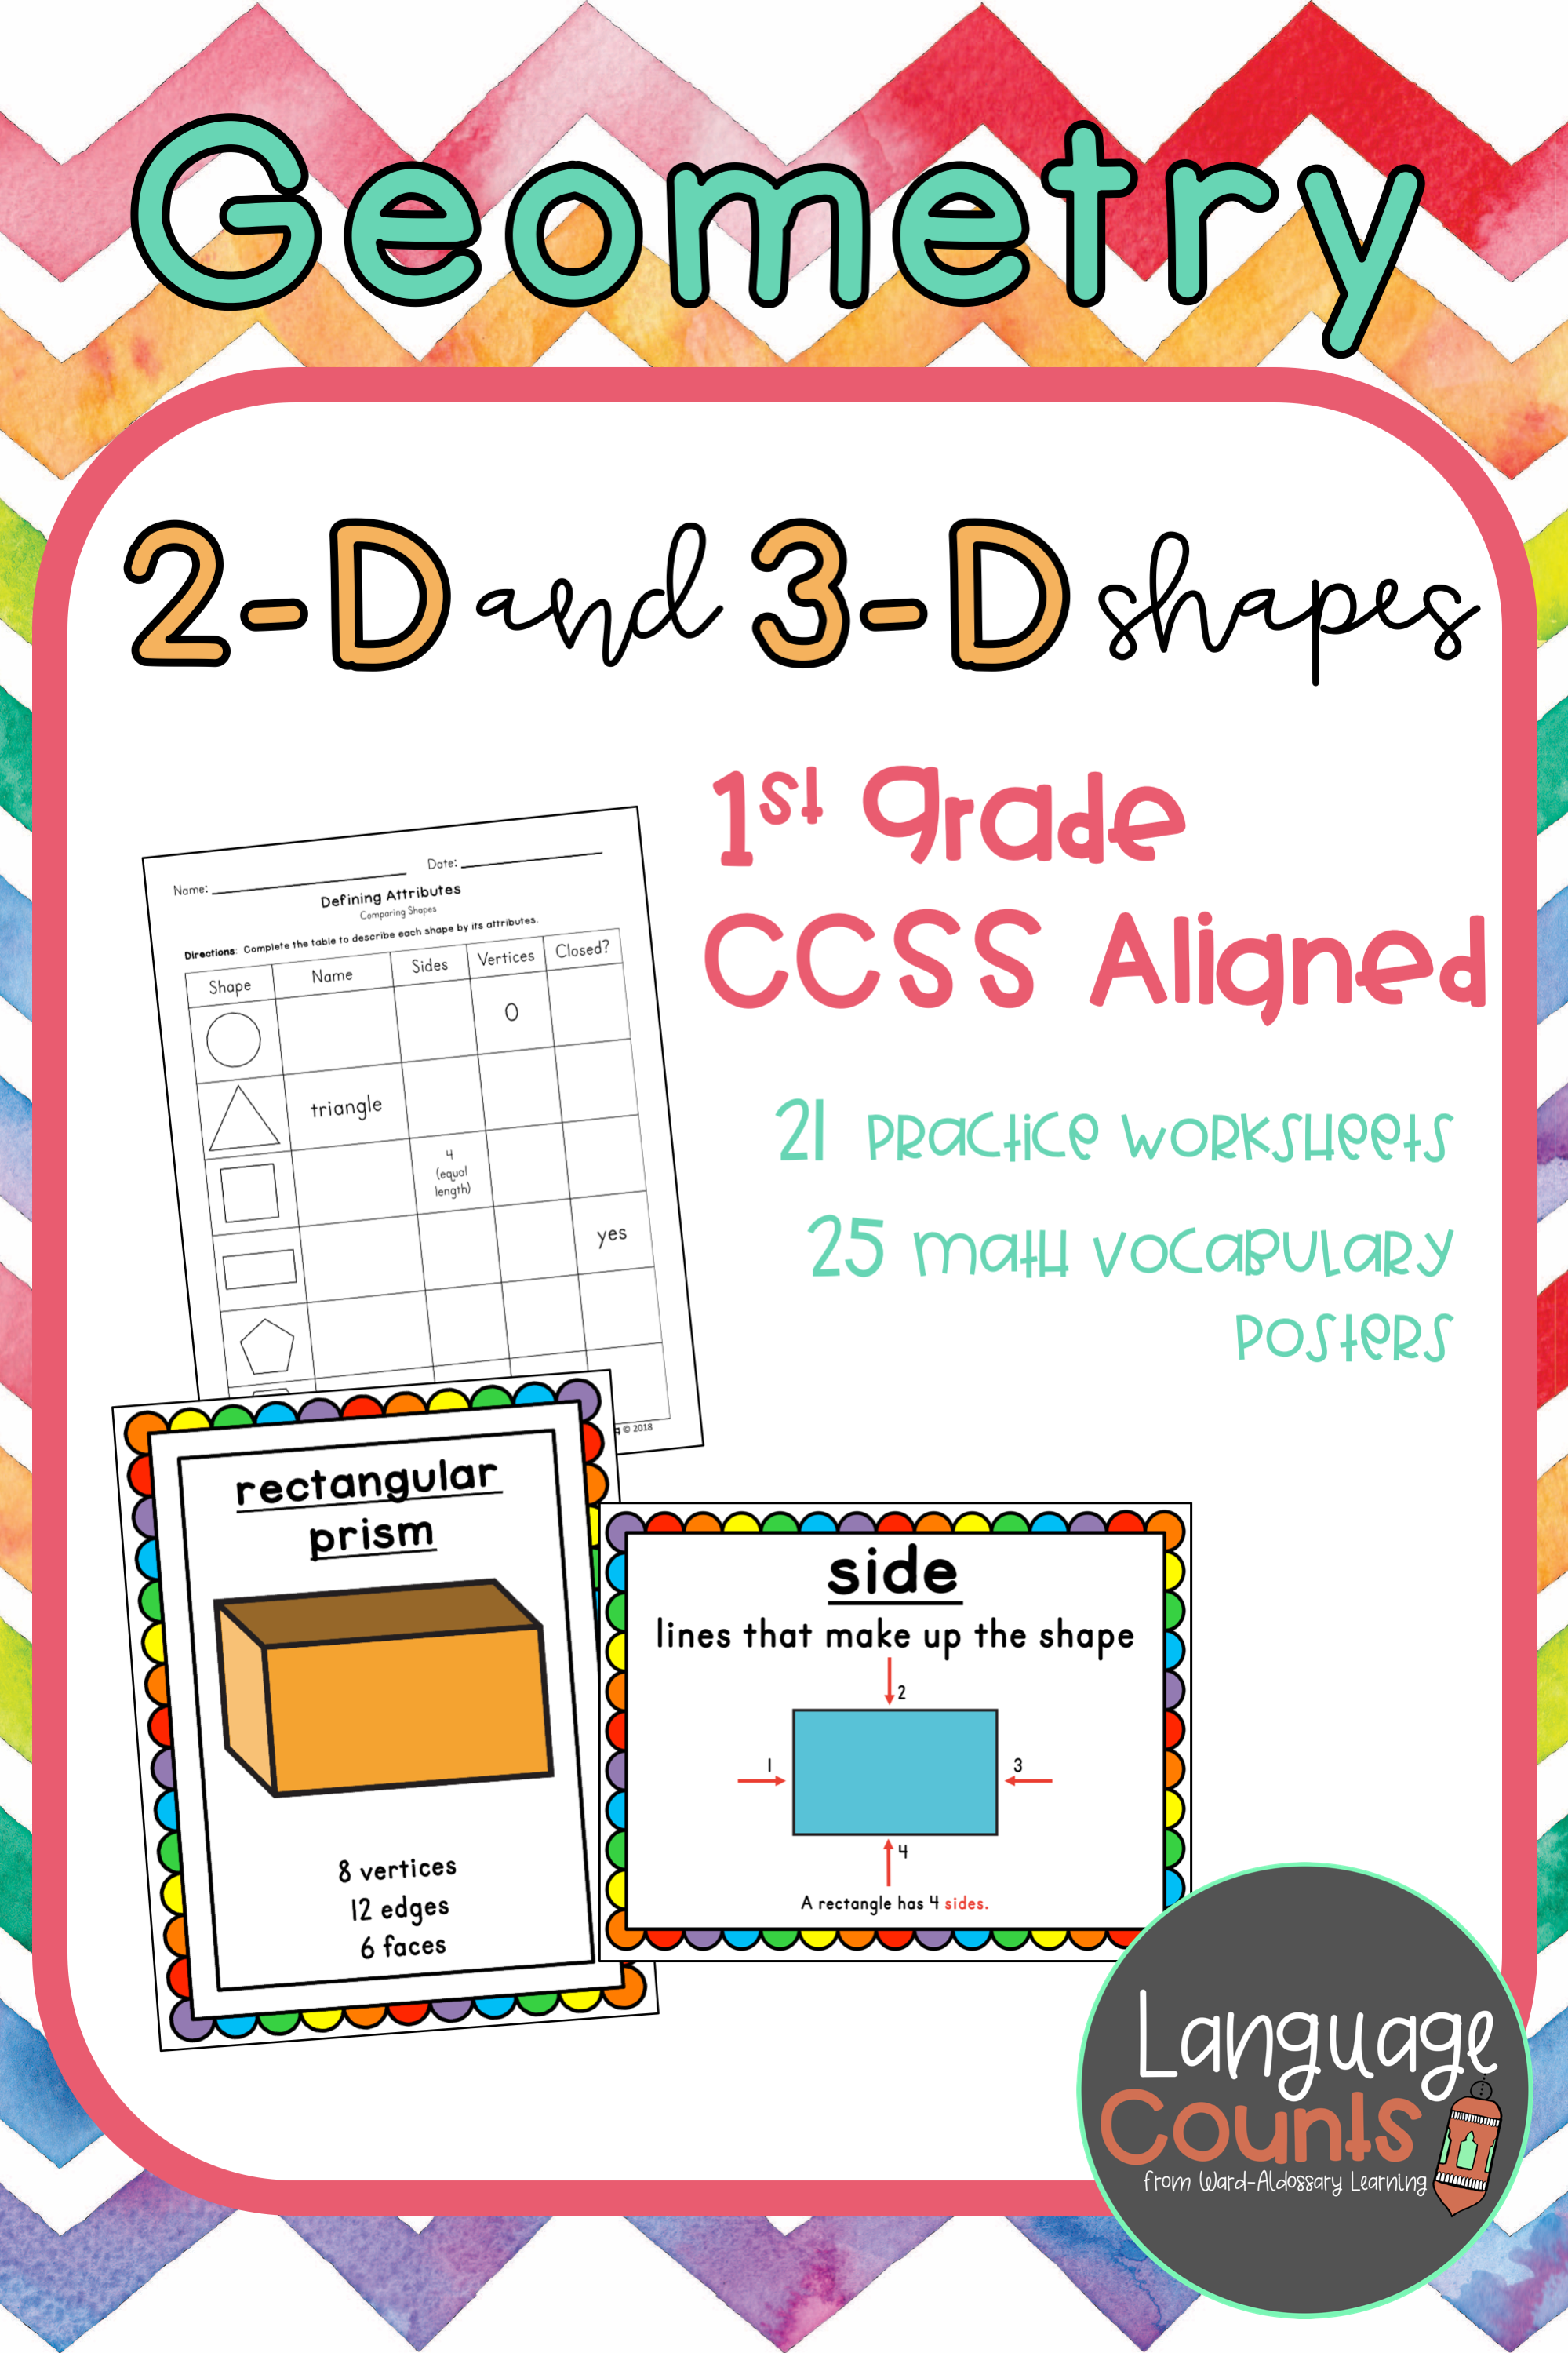 Geometry 2 D And 3 D Shapes 1st Grade